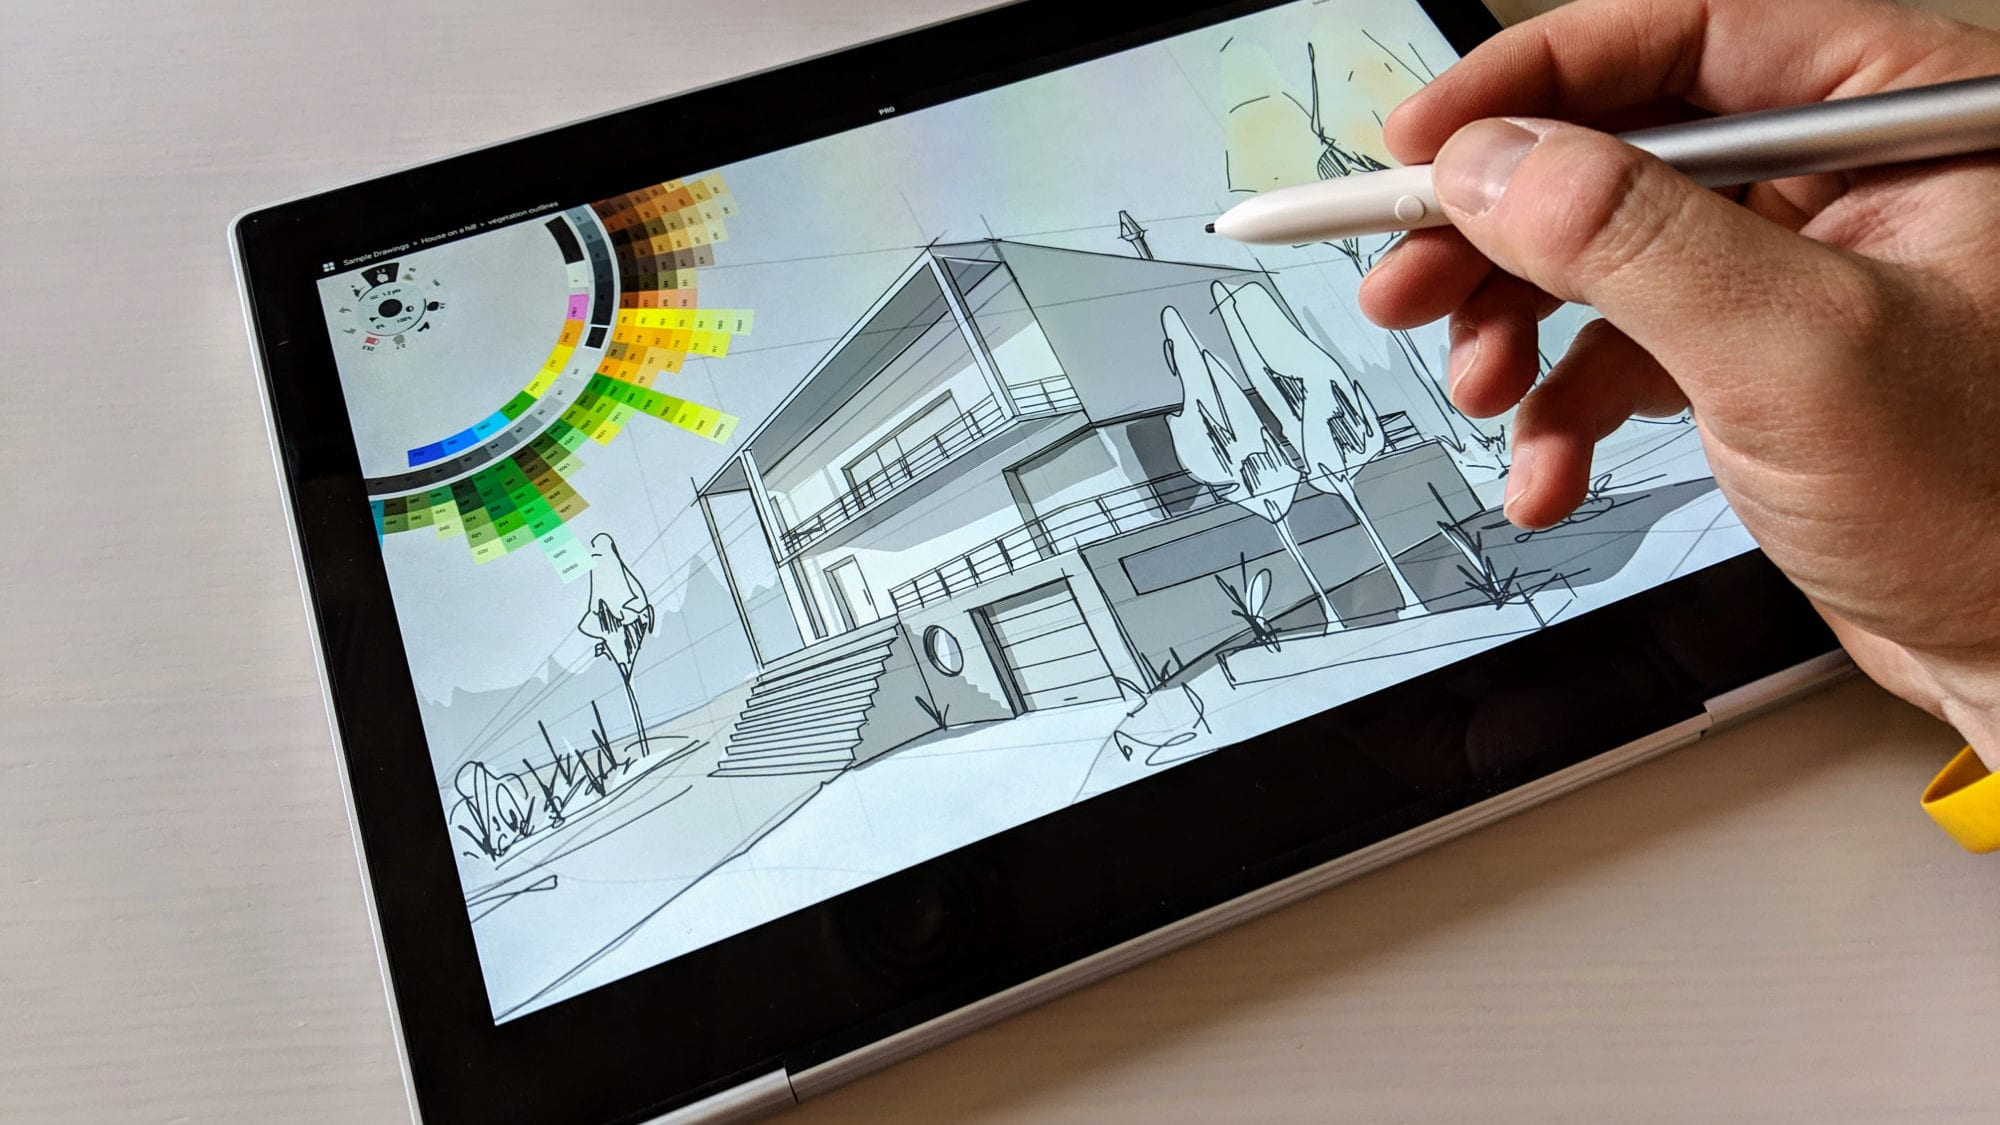 DEAL ALERT: Latest Chromebook Offers Feature Fantastic Drawing Tools For Free